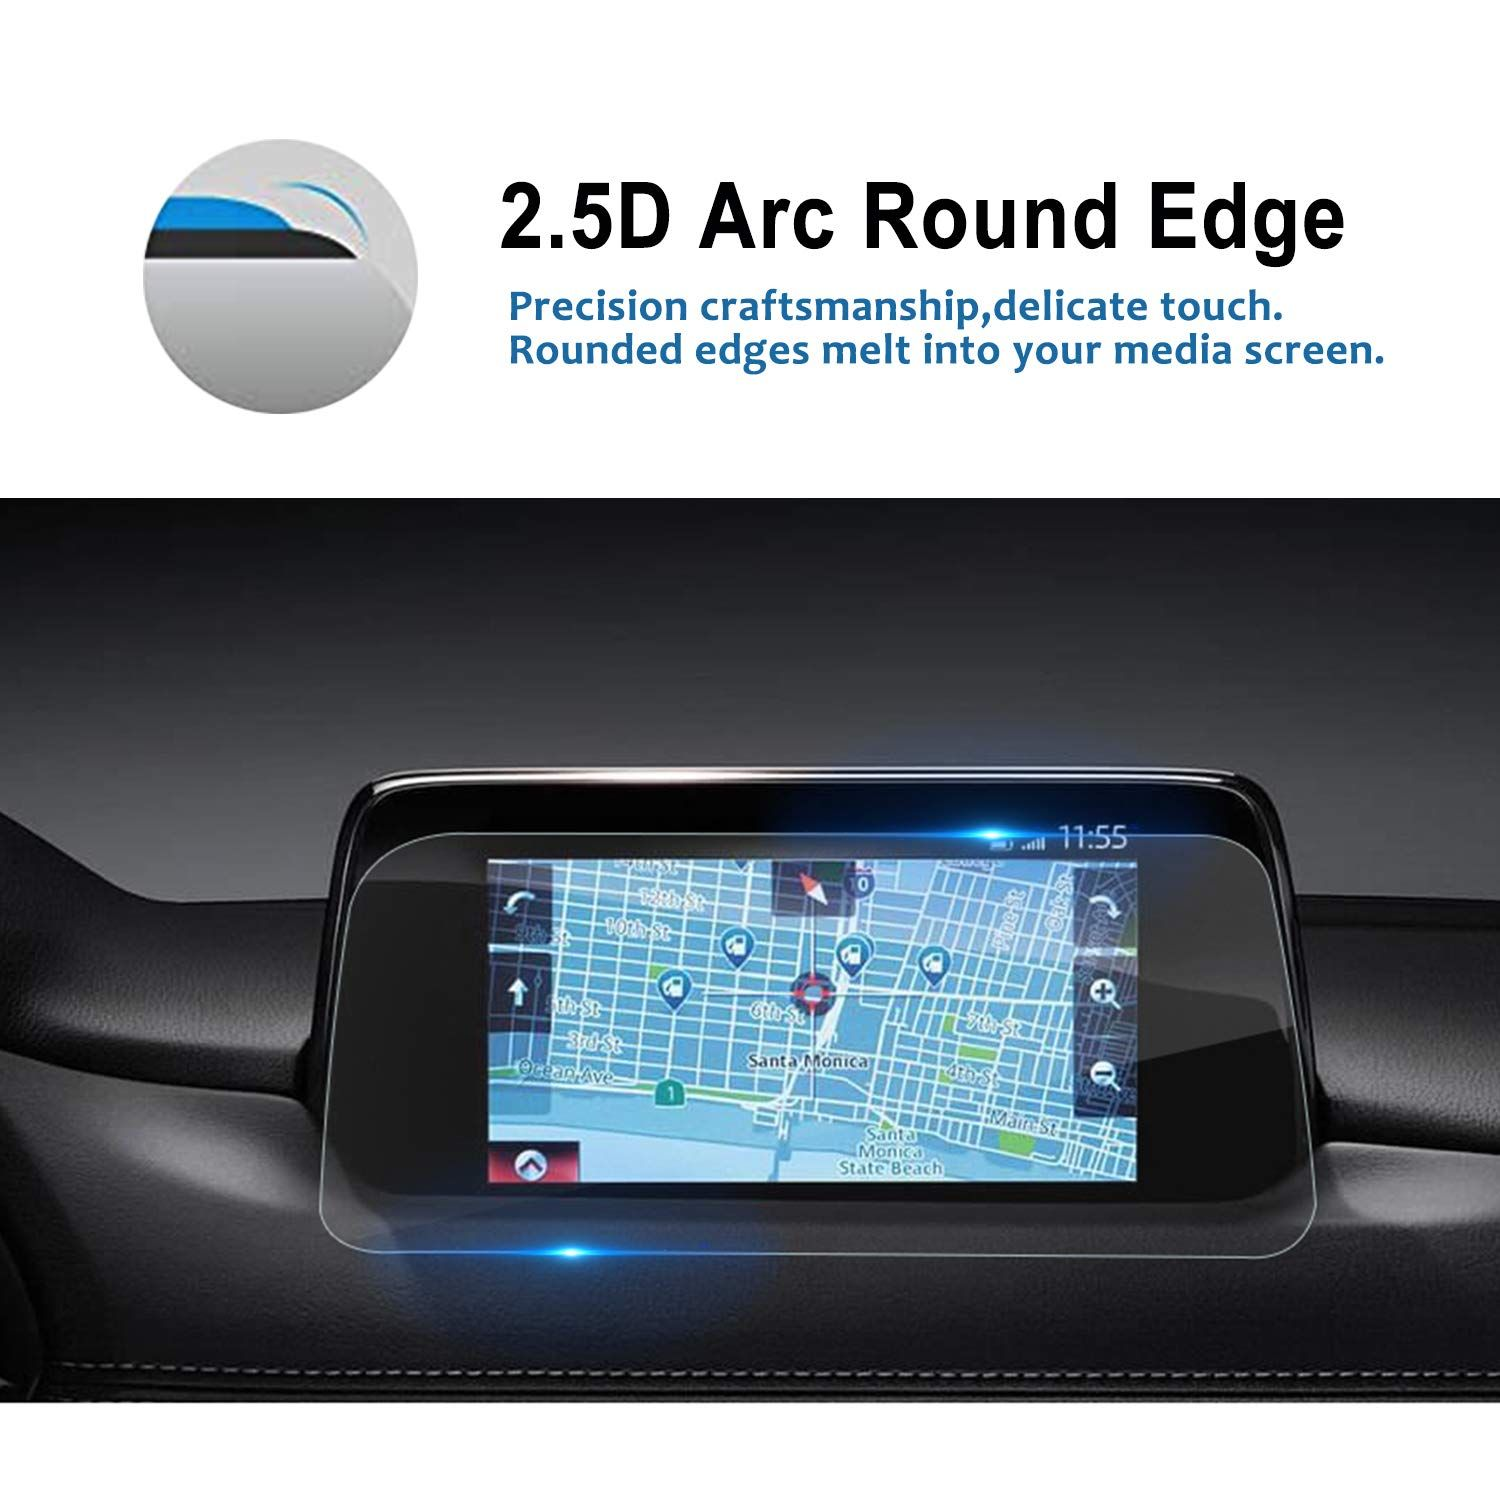 LFOTPP 2018 Toyota Camry XLE XSE 8-Inch Control Screen Protectors /&Gear Position Panel Film 4PCS PET Plastic Center Touch HD Crystal Clear in-Dash Navigation Protective Film